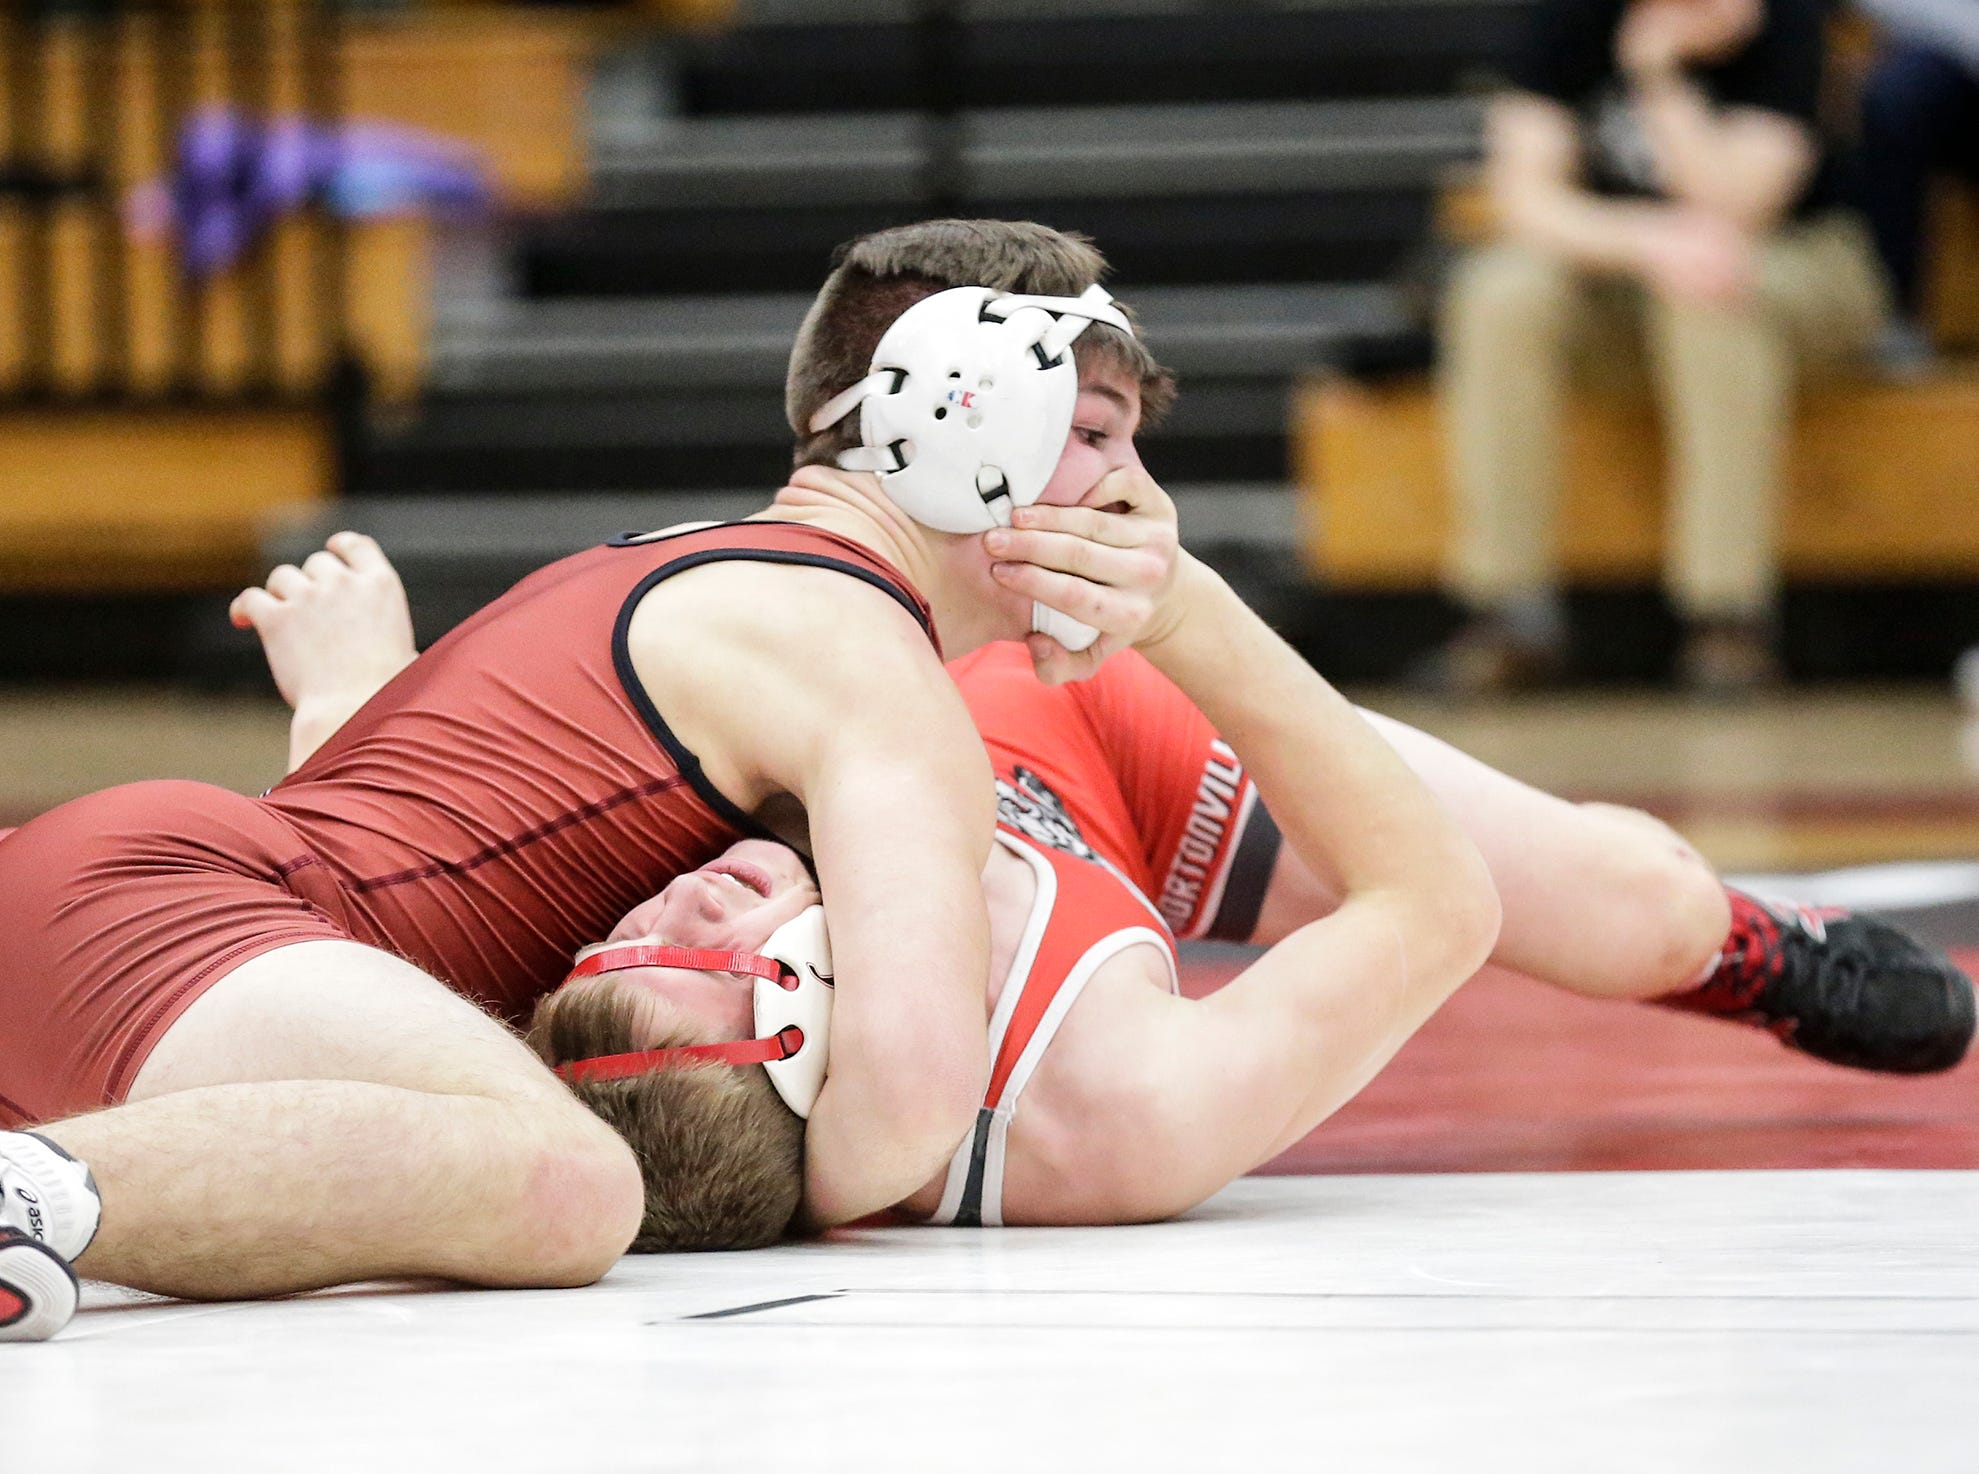 Fond du Lac High School wrestling's Josiah Streblow wrestles against George Huza of Hortonville High School in the 160 weight class during their meet Thrusday, December 6, 2018 in Fond du Lac, Wisconsin. Streblow won the match 11-4 and Fond du Lac won the meet 51-18. Doug Raflik/USA TODAY NETWORK-Wisconsin